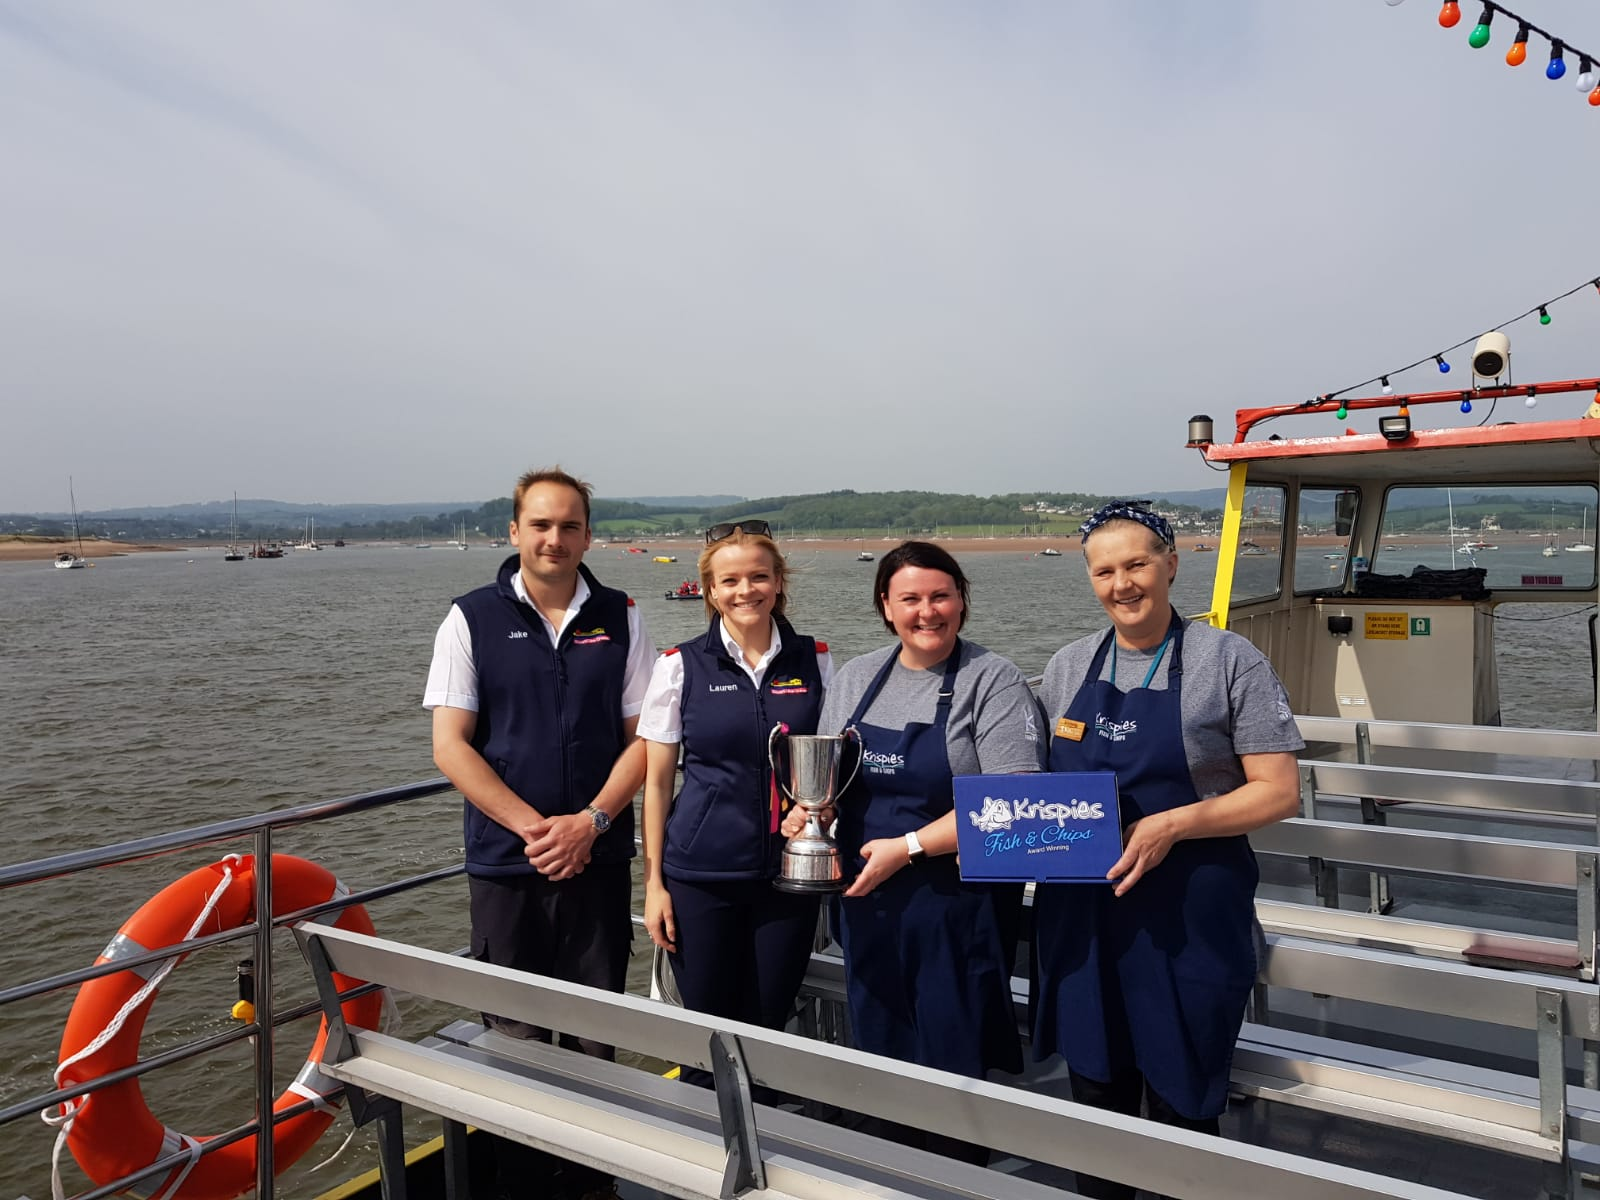 Award Winning Stuart Line Cruises and Krispies Exmouth team up to celebrate National Fish and Chip Day!